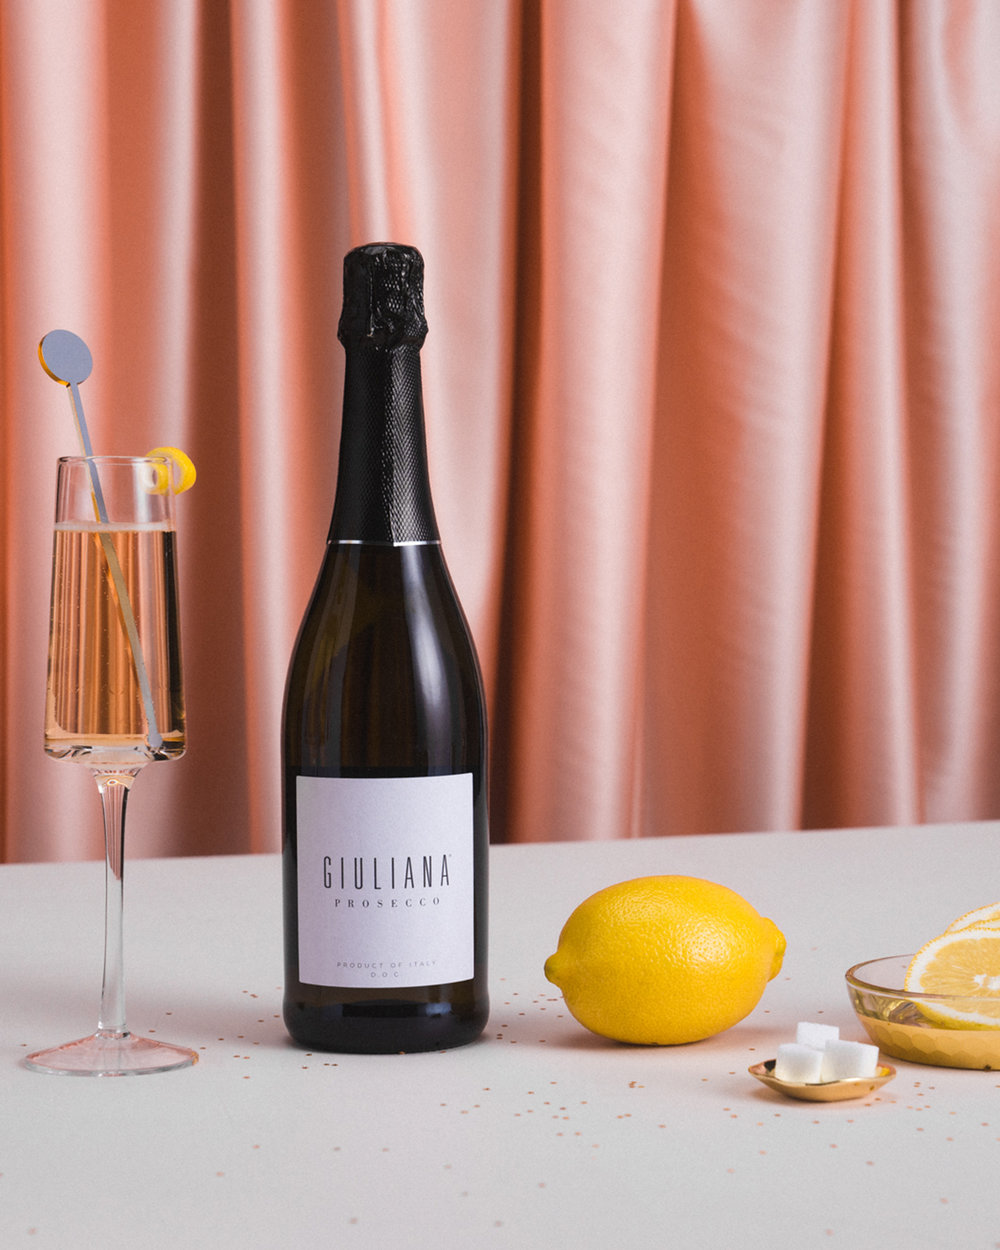 When life gives you lemons, make a Prosecco Cocktail 🍋🥂